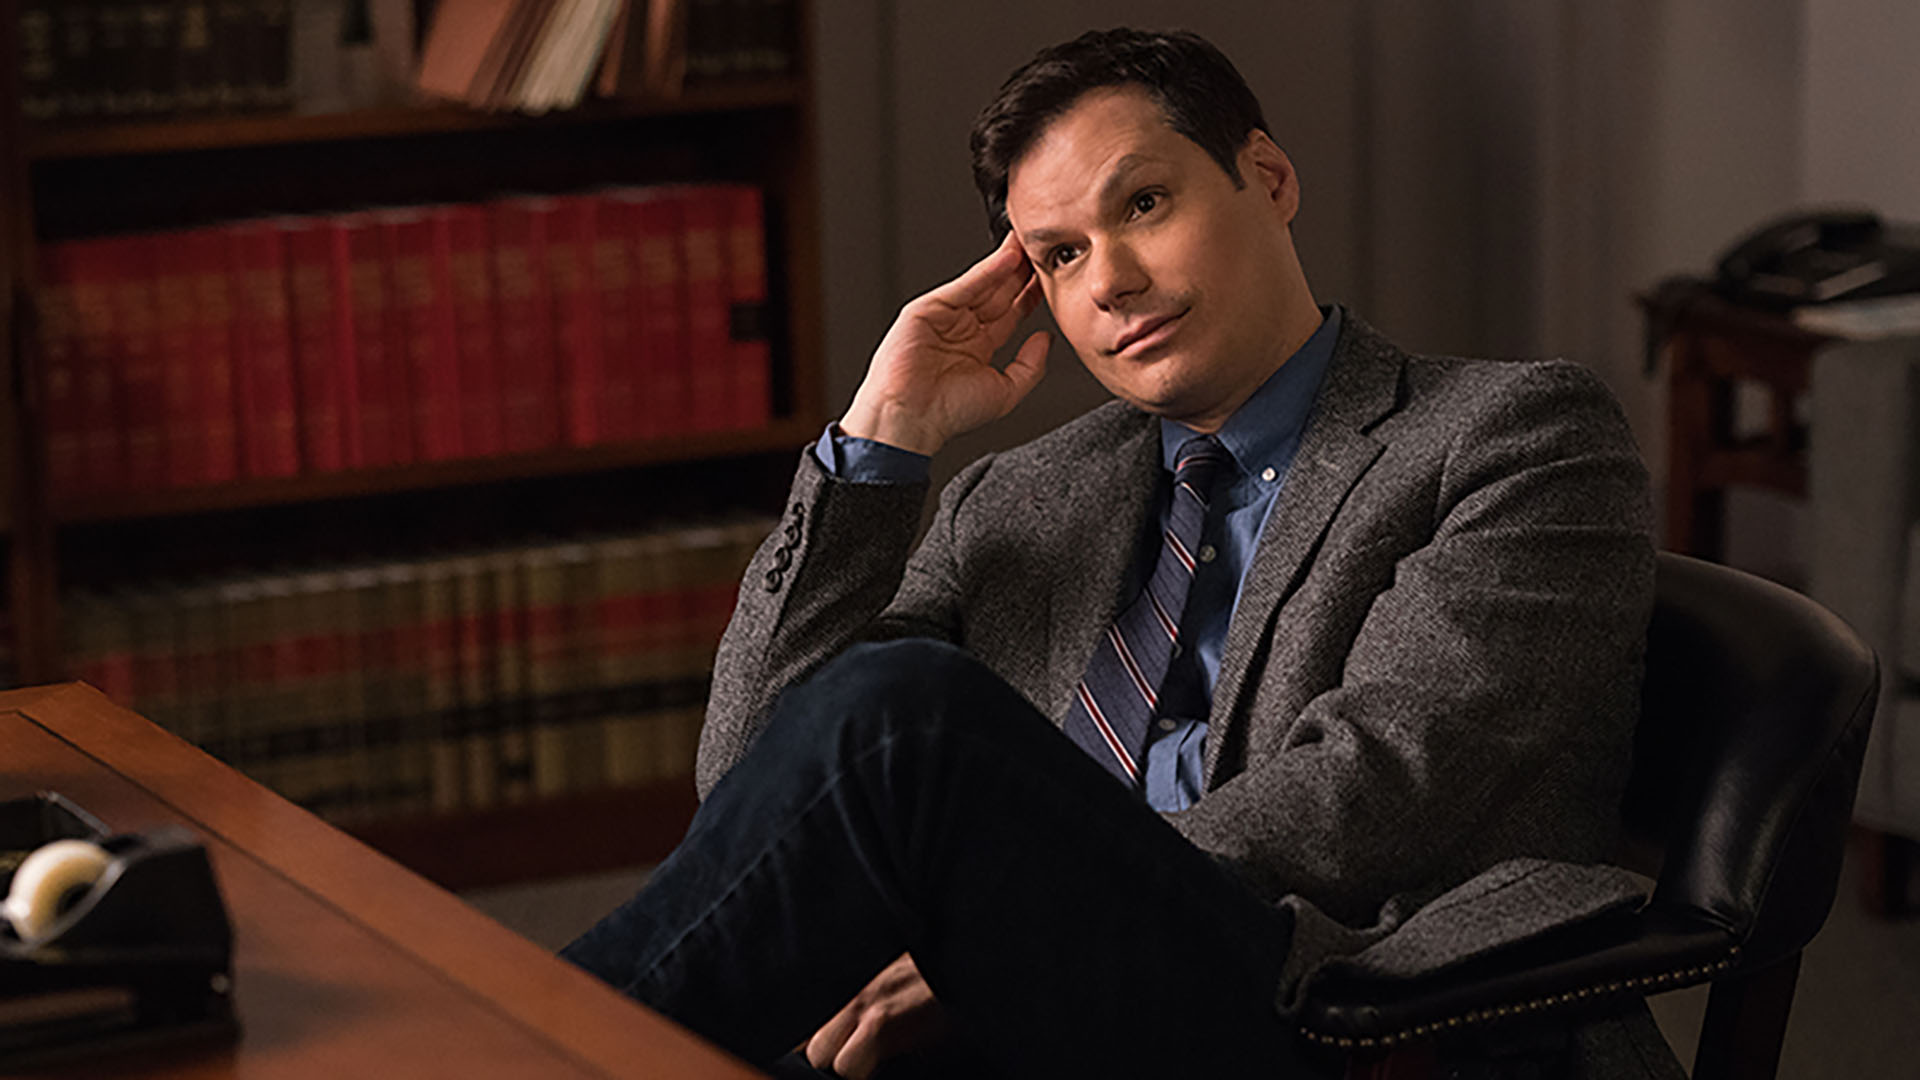 Michael Ian Black as Stephen Rankin-Hall